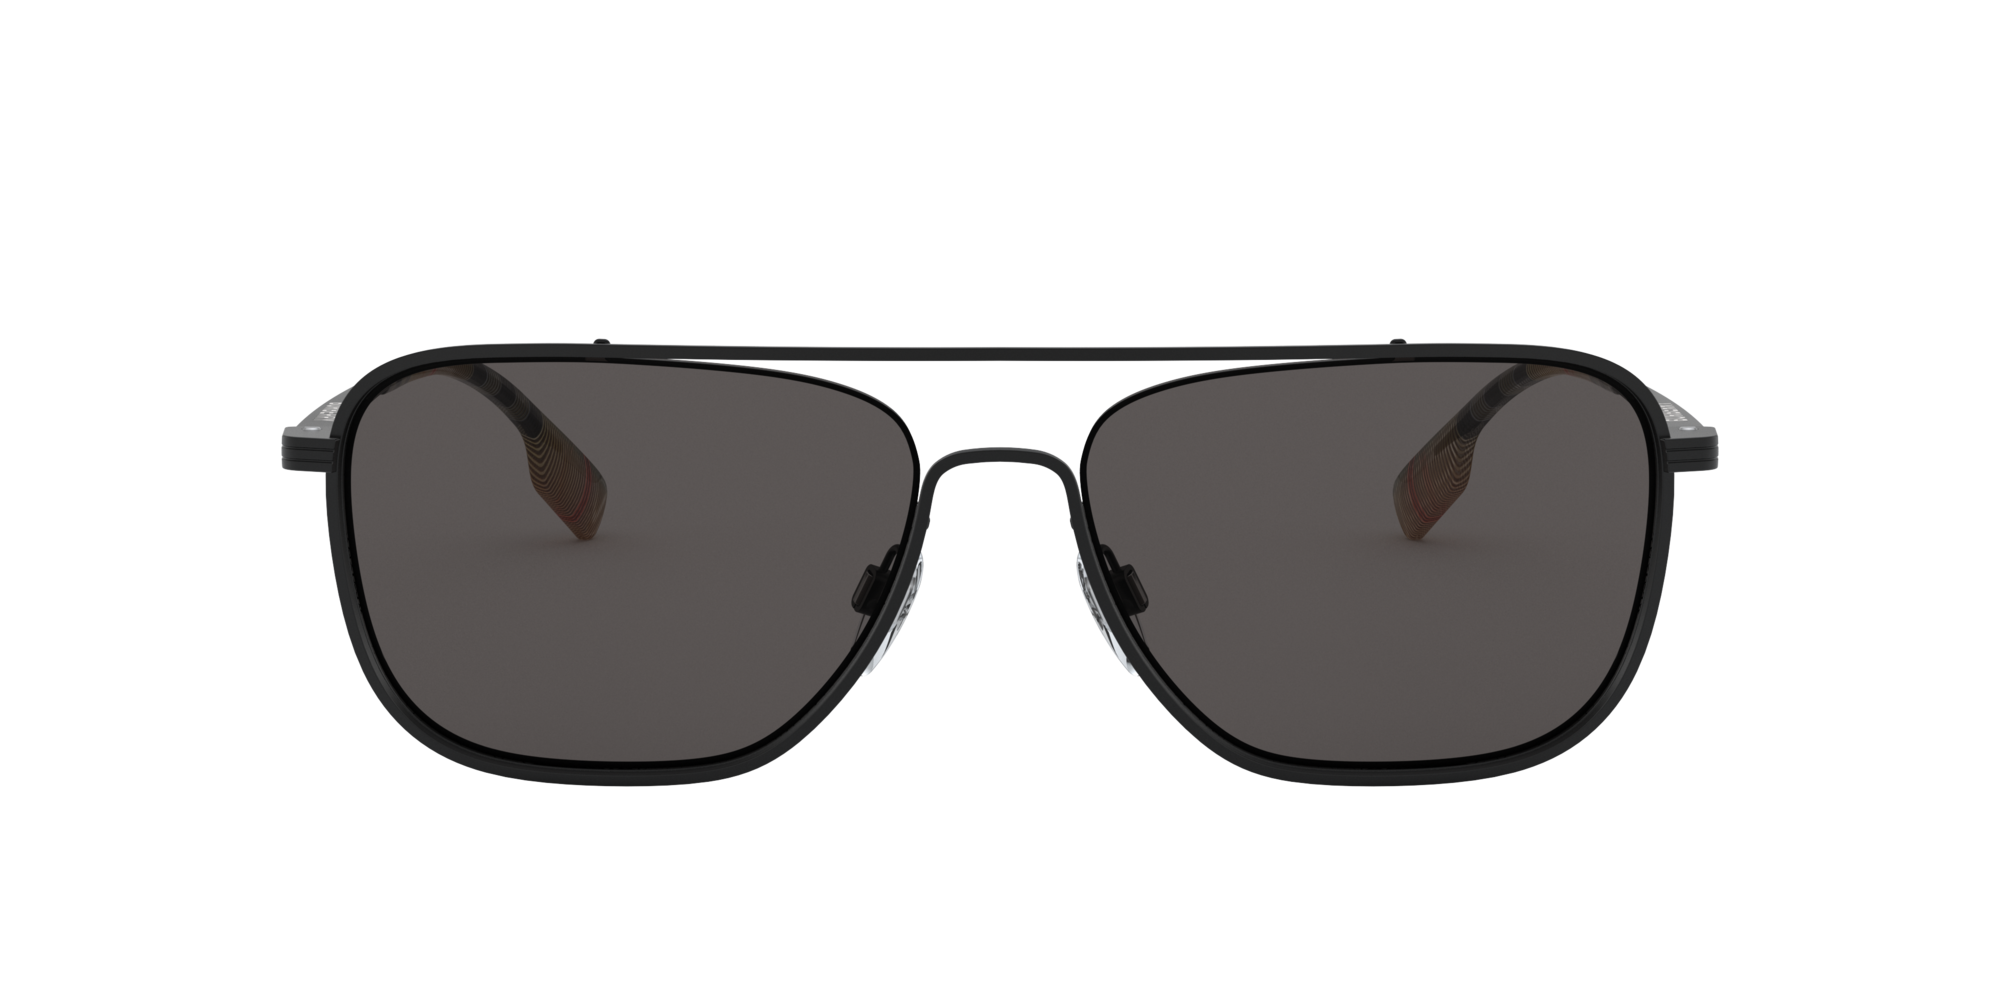 Image for BE3112 59 FALCON from LensCrafters   Glasses, Prescription Glasses Online, Eyewear